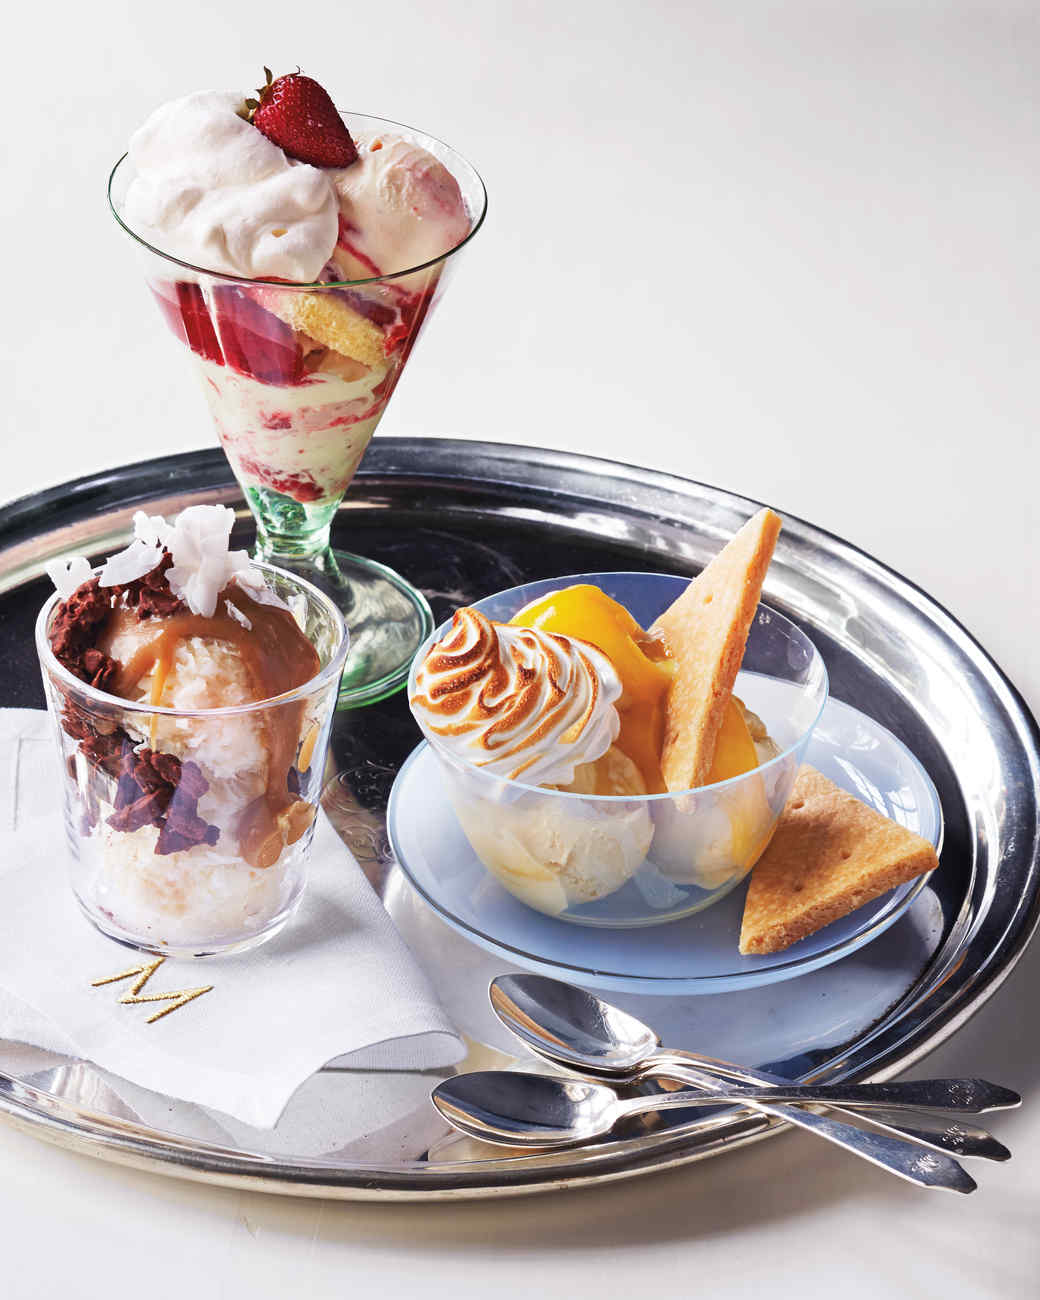 icecream-sundae-opener-297-d112073.jpg